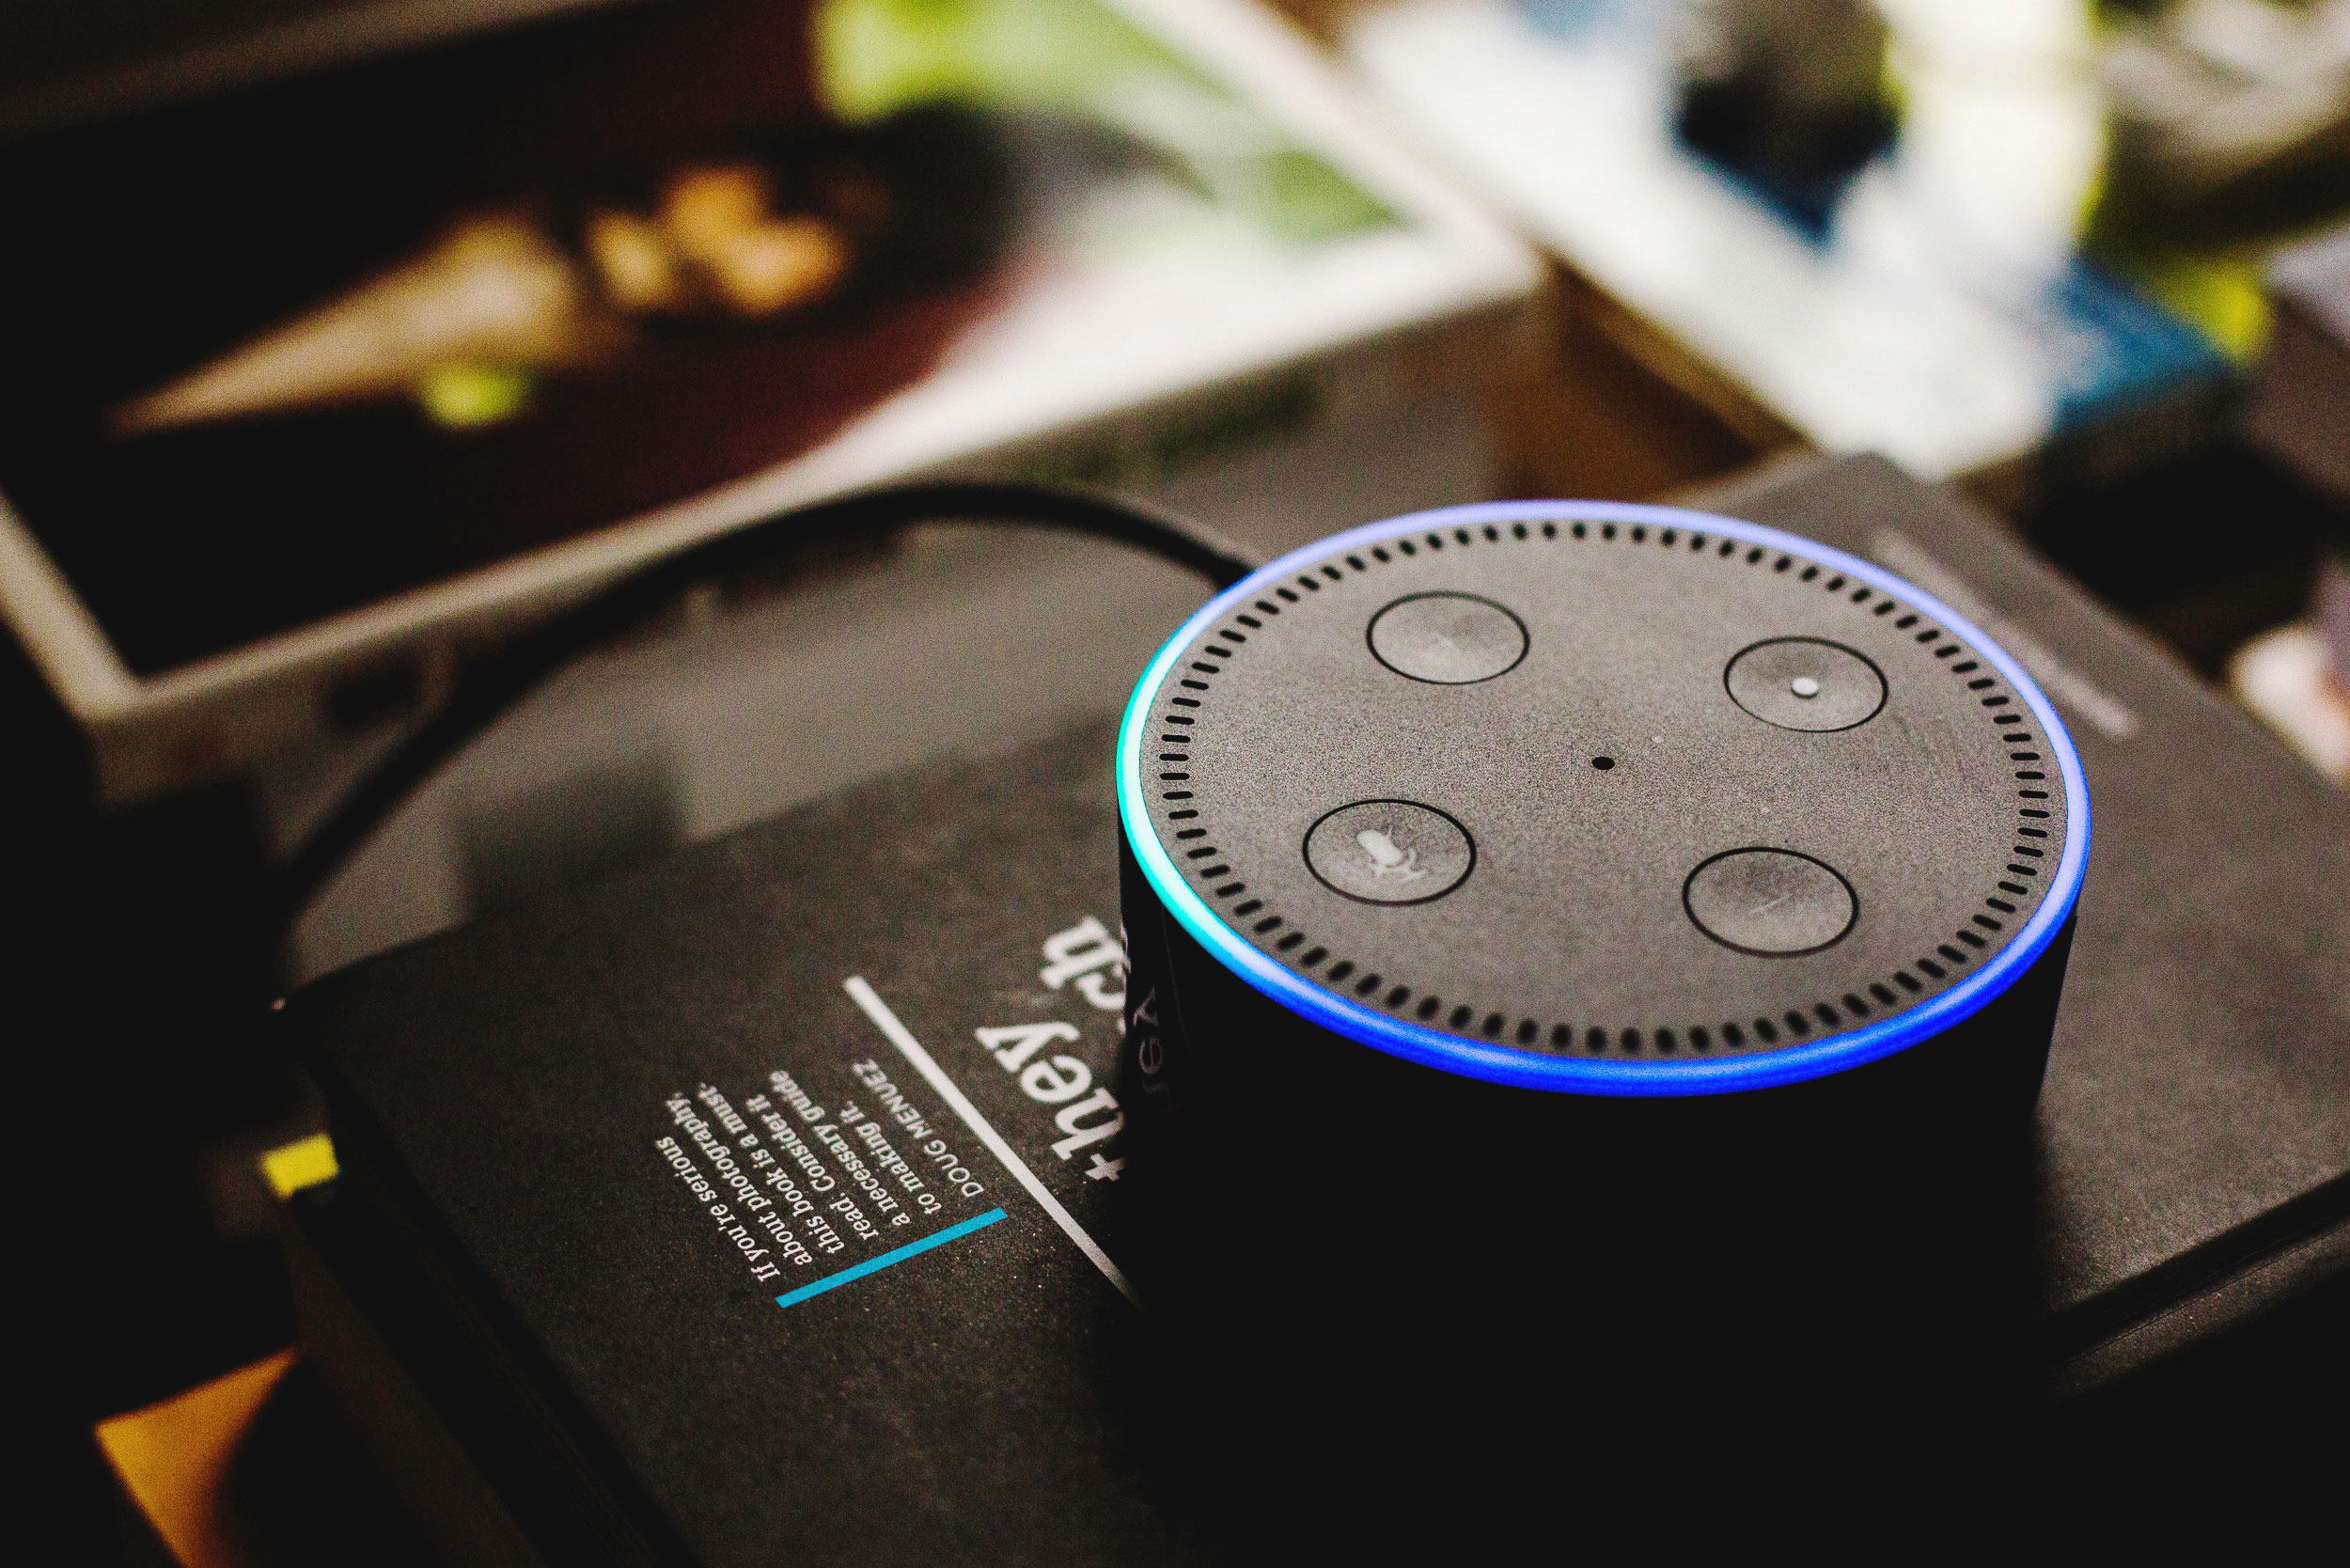 Voice assistants like Amazon Alexa can streamline the purchases